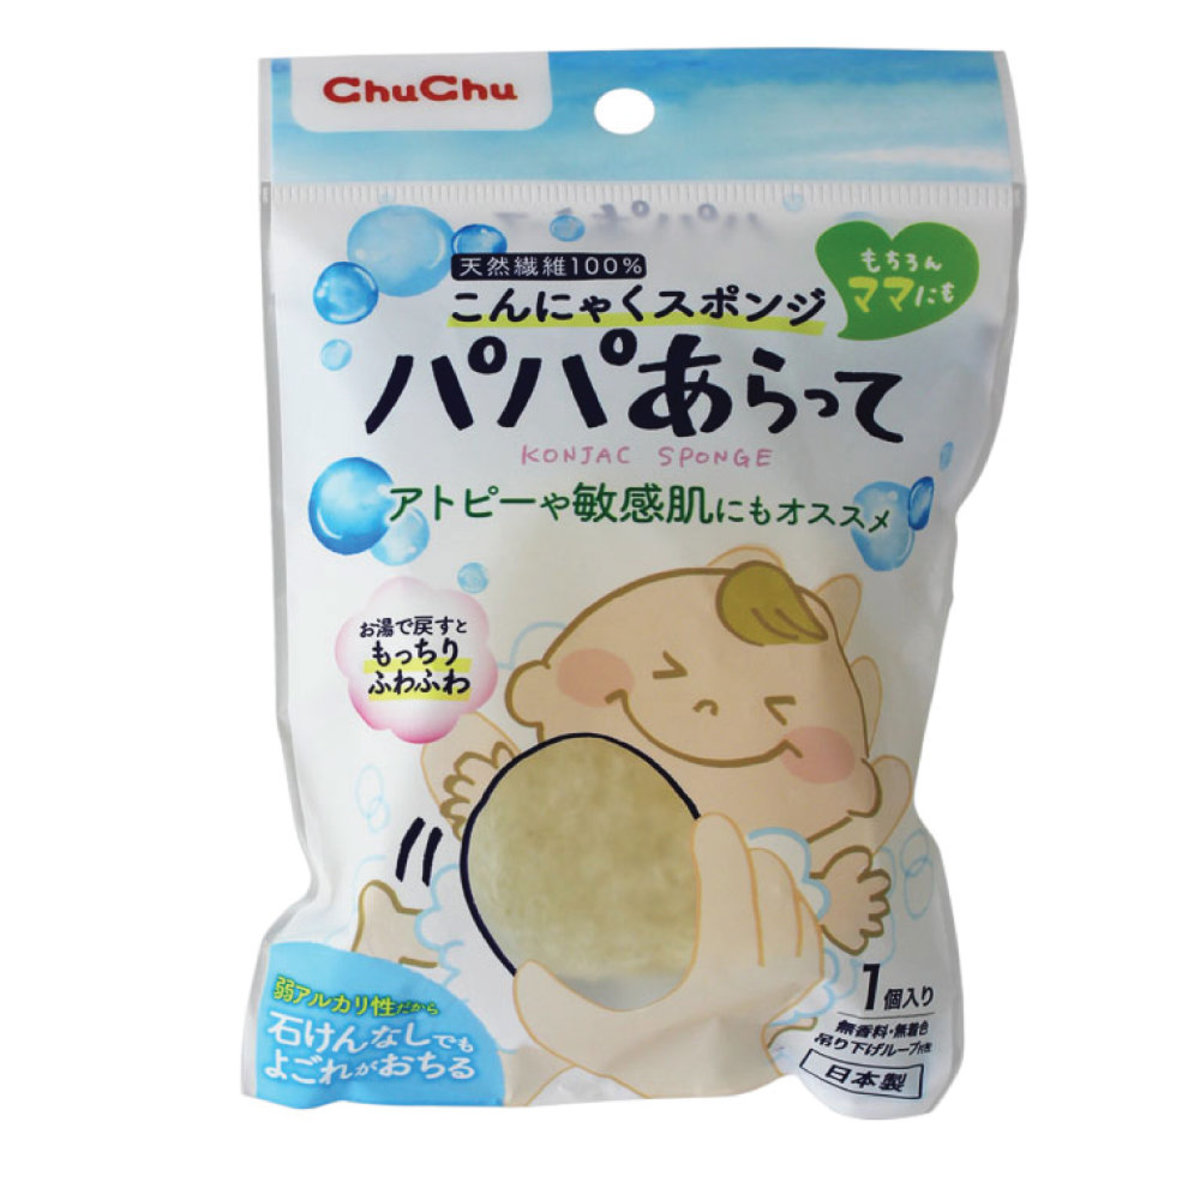 Bathing cotton (new packing) (parallel import)